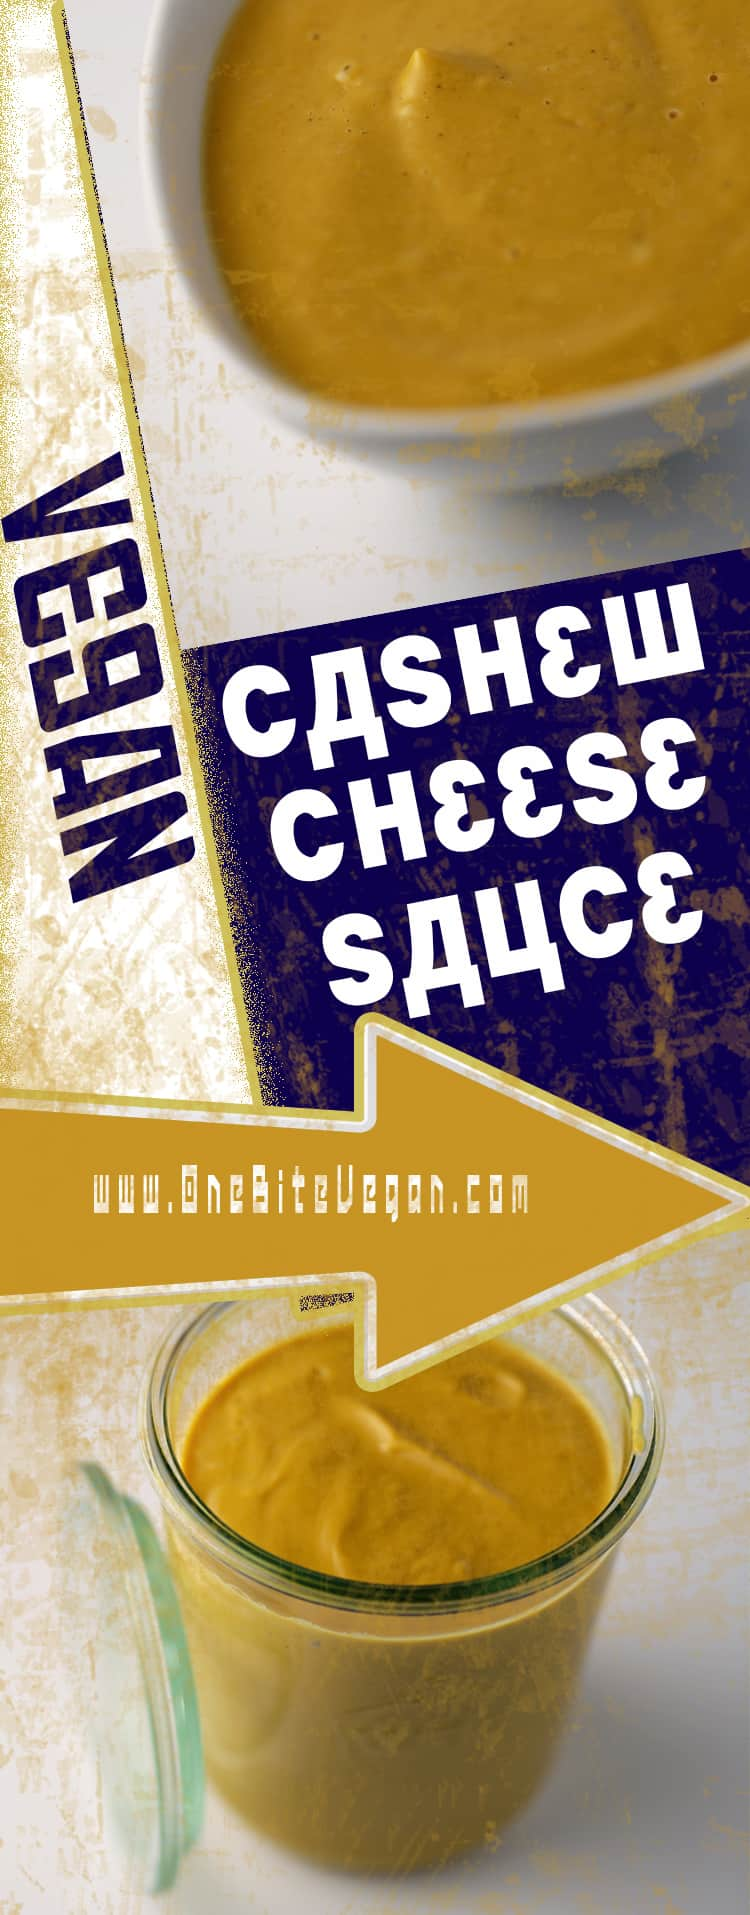 Vegan cashew cheese sauce. Cashew based cheese sauce made in a blender with butternut squash, miso, vegetable stock, and nutritional yeast.